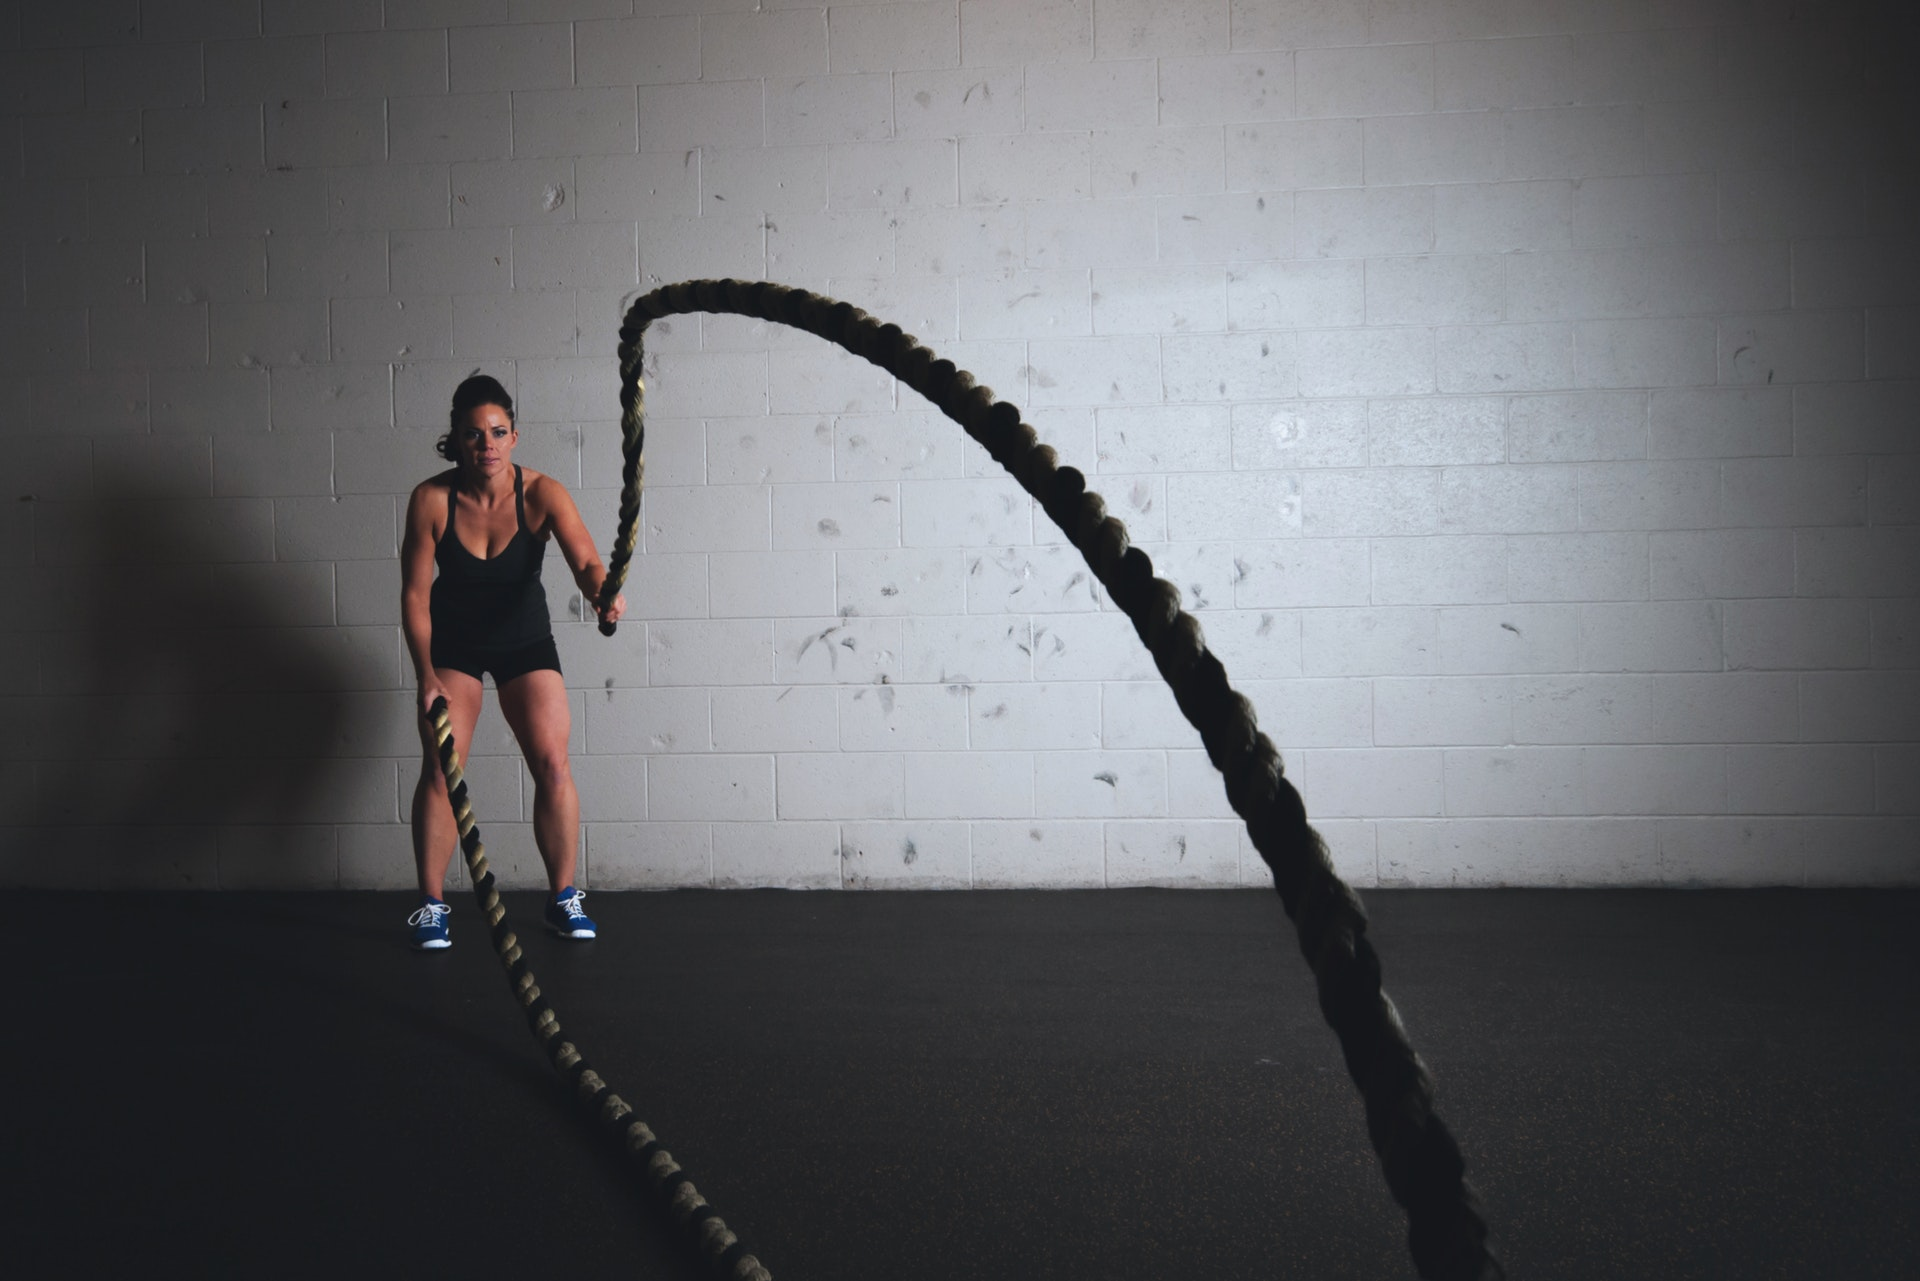 Perform at least one HIIT workout this week! -